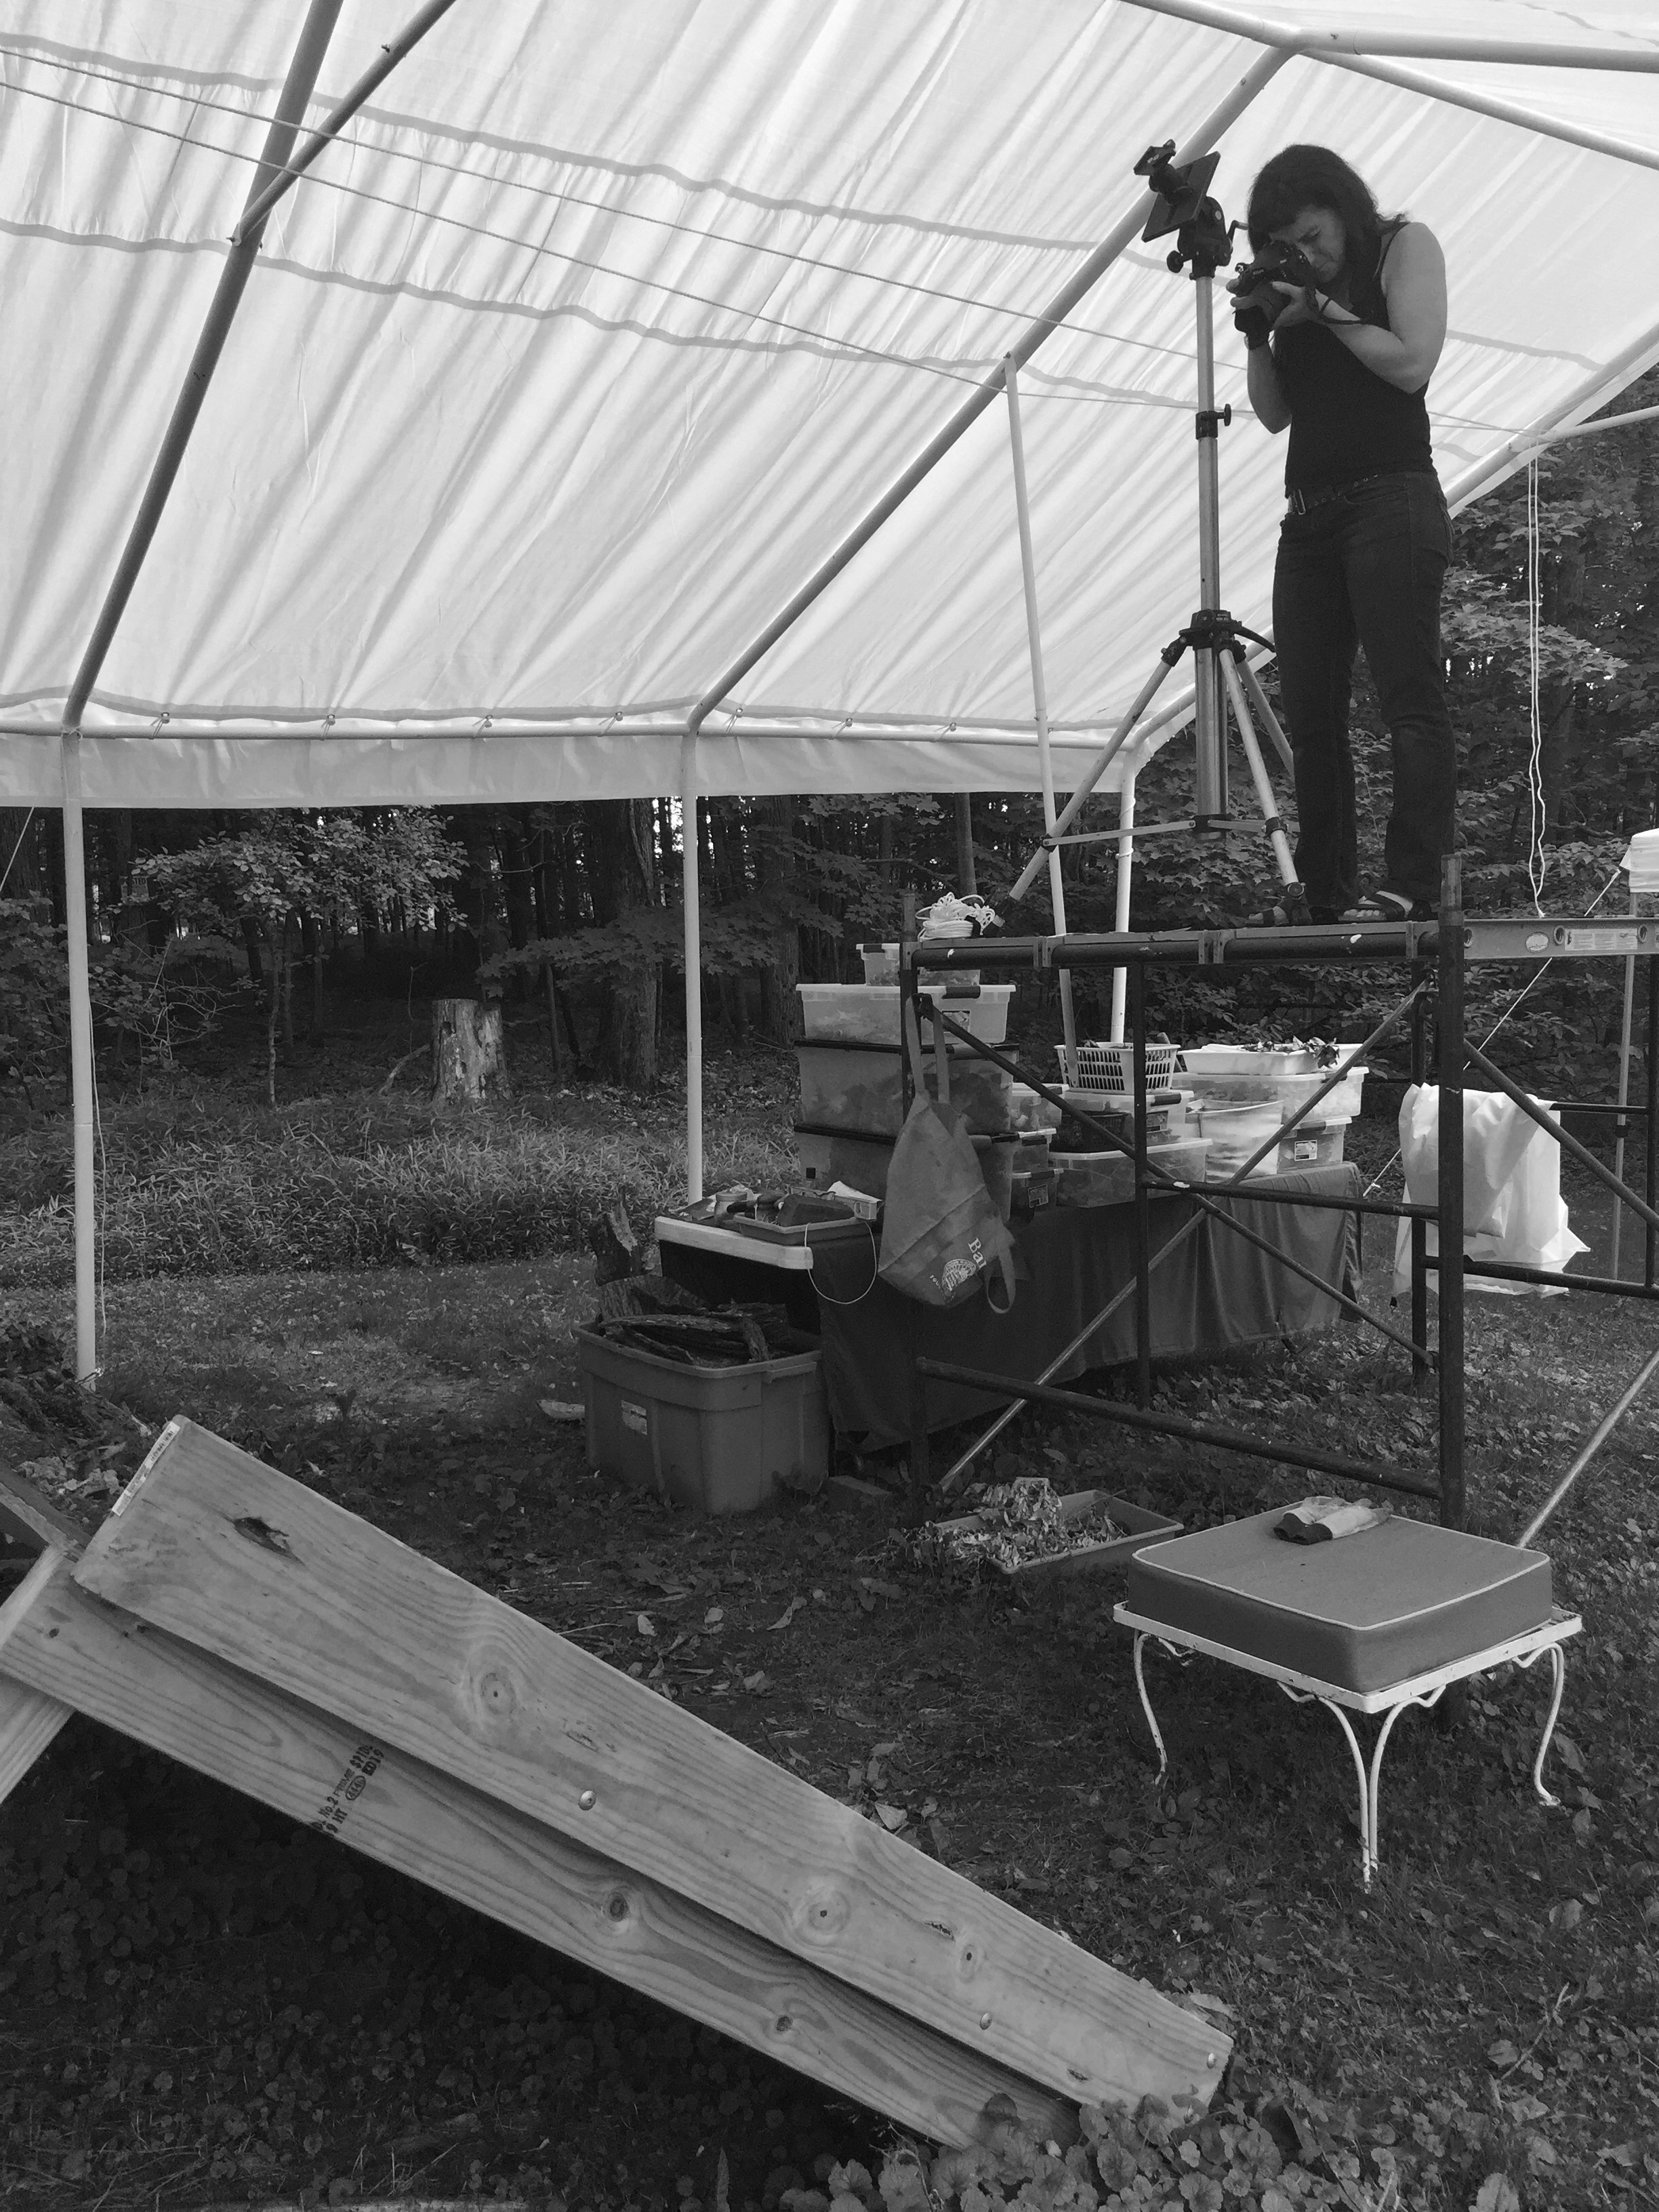 Tanya Marcuse working in her outdoor studio, 2016.  Photograph by Ann Burke Daly